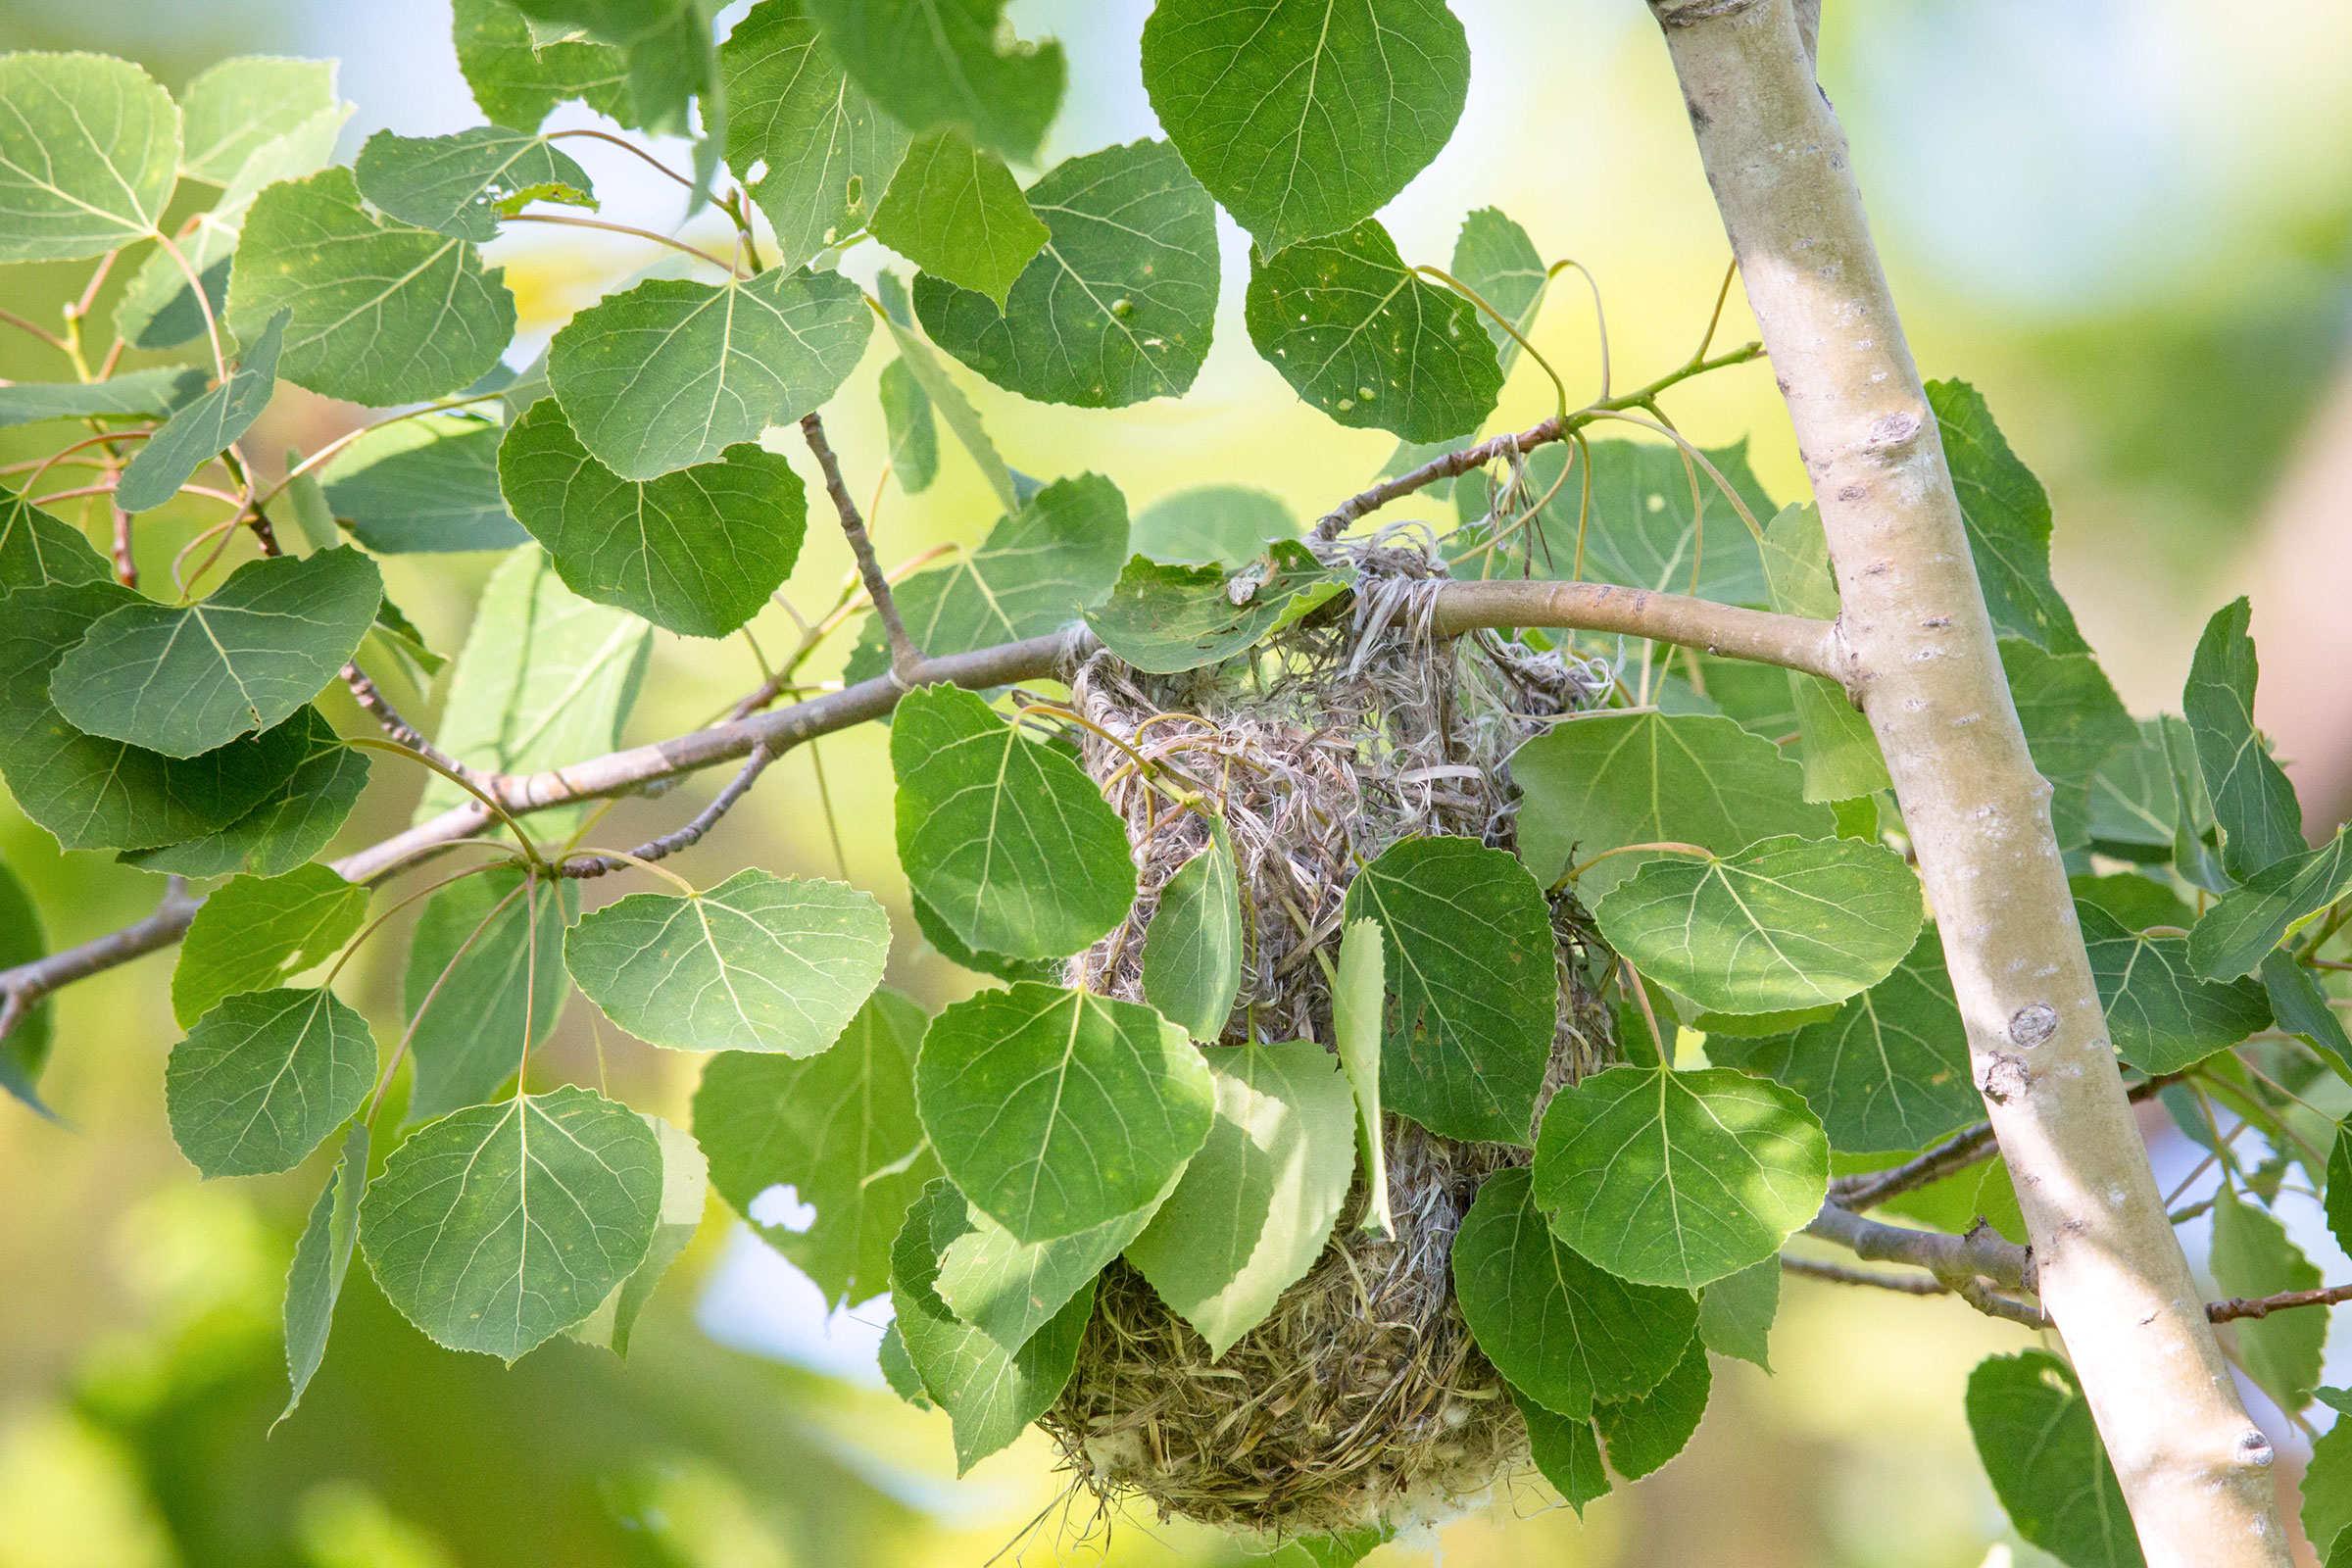 A completed Baltimore Oriole nest. Linda Freshwaters Arndt/Alamy